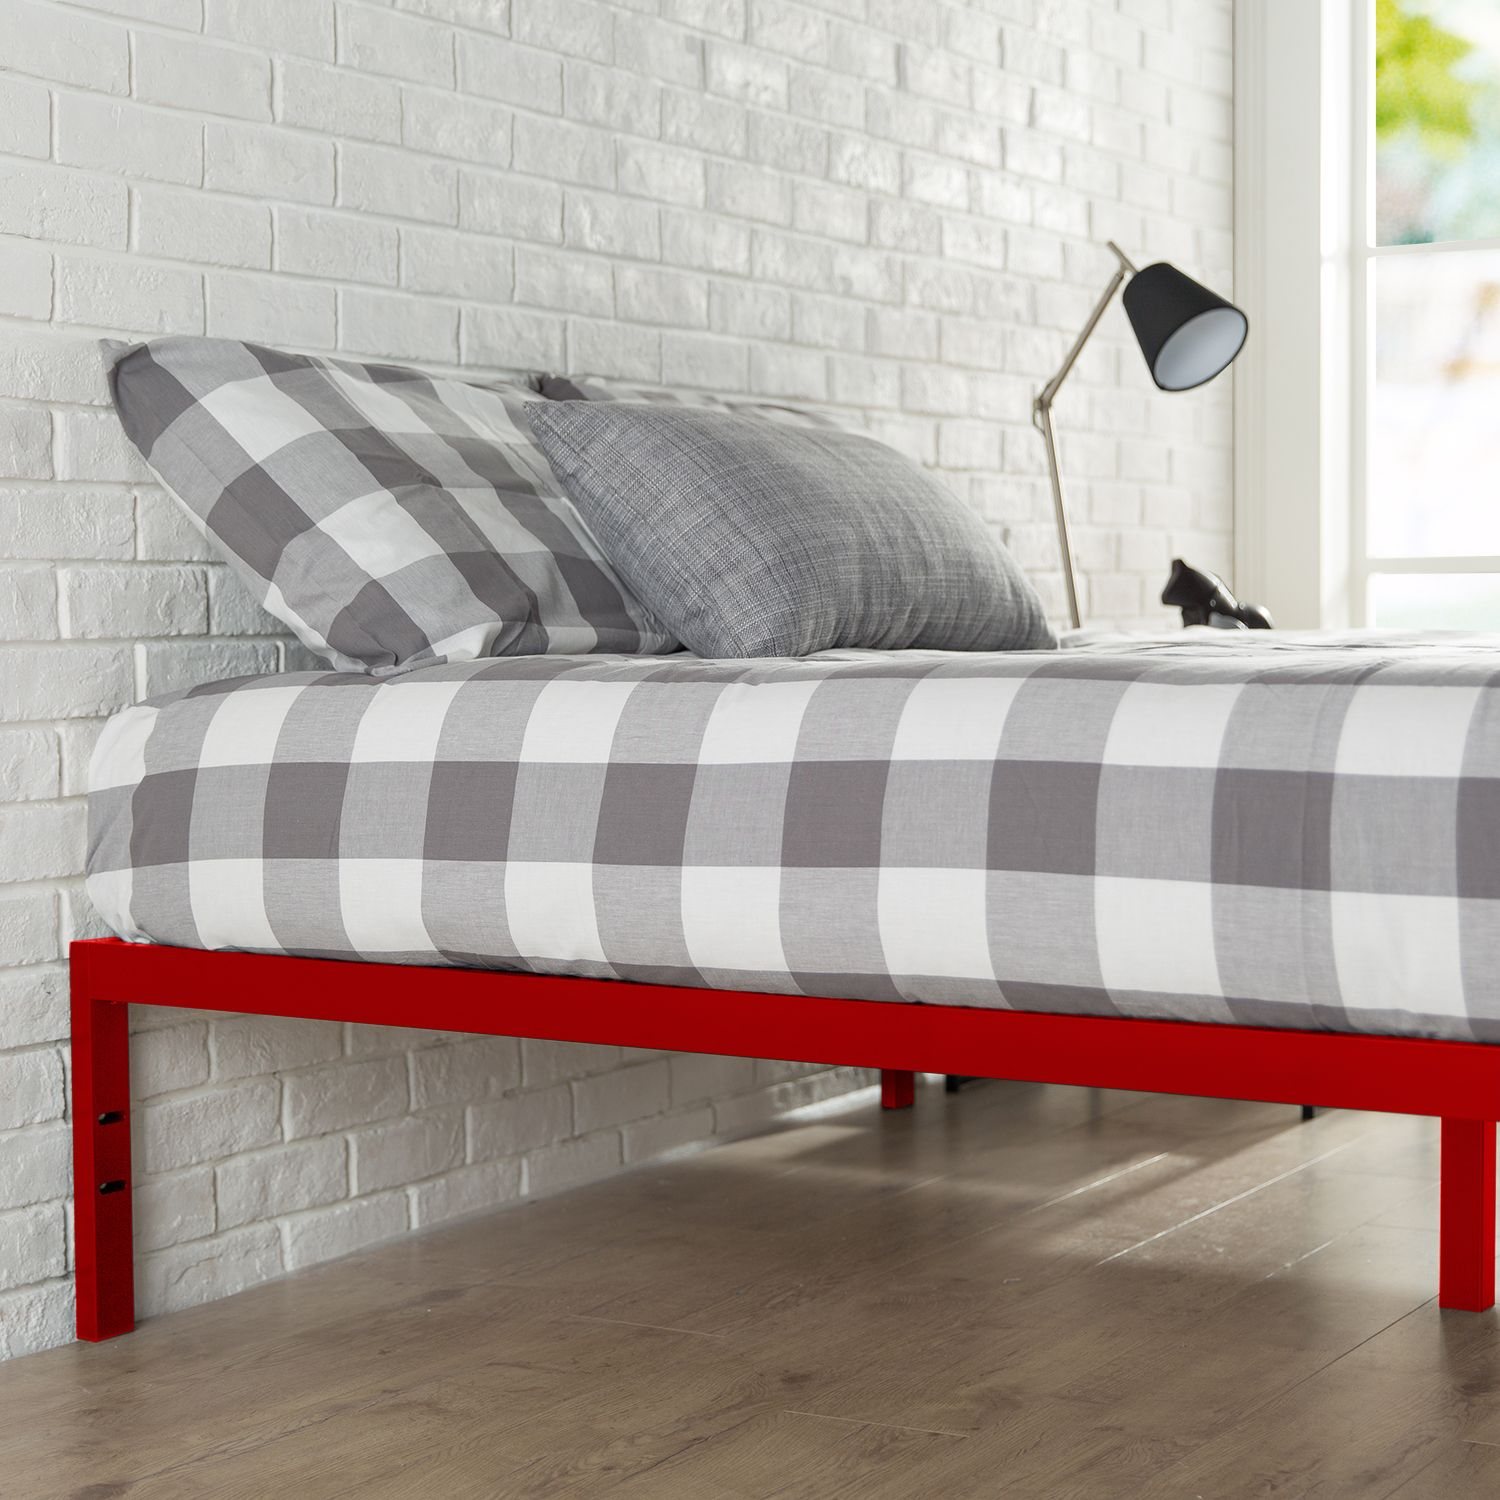 Buy a Platform 1500 Metal Bed Frame Mattress Foundation   Red  Shop Zinus  for mattresses and other comfort solutions and discover a better sleep. zinus platform metal bed frame 1500 5   Home Decor  Nigel